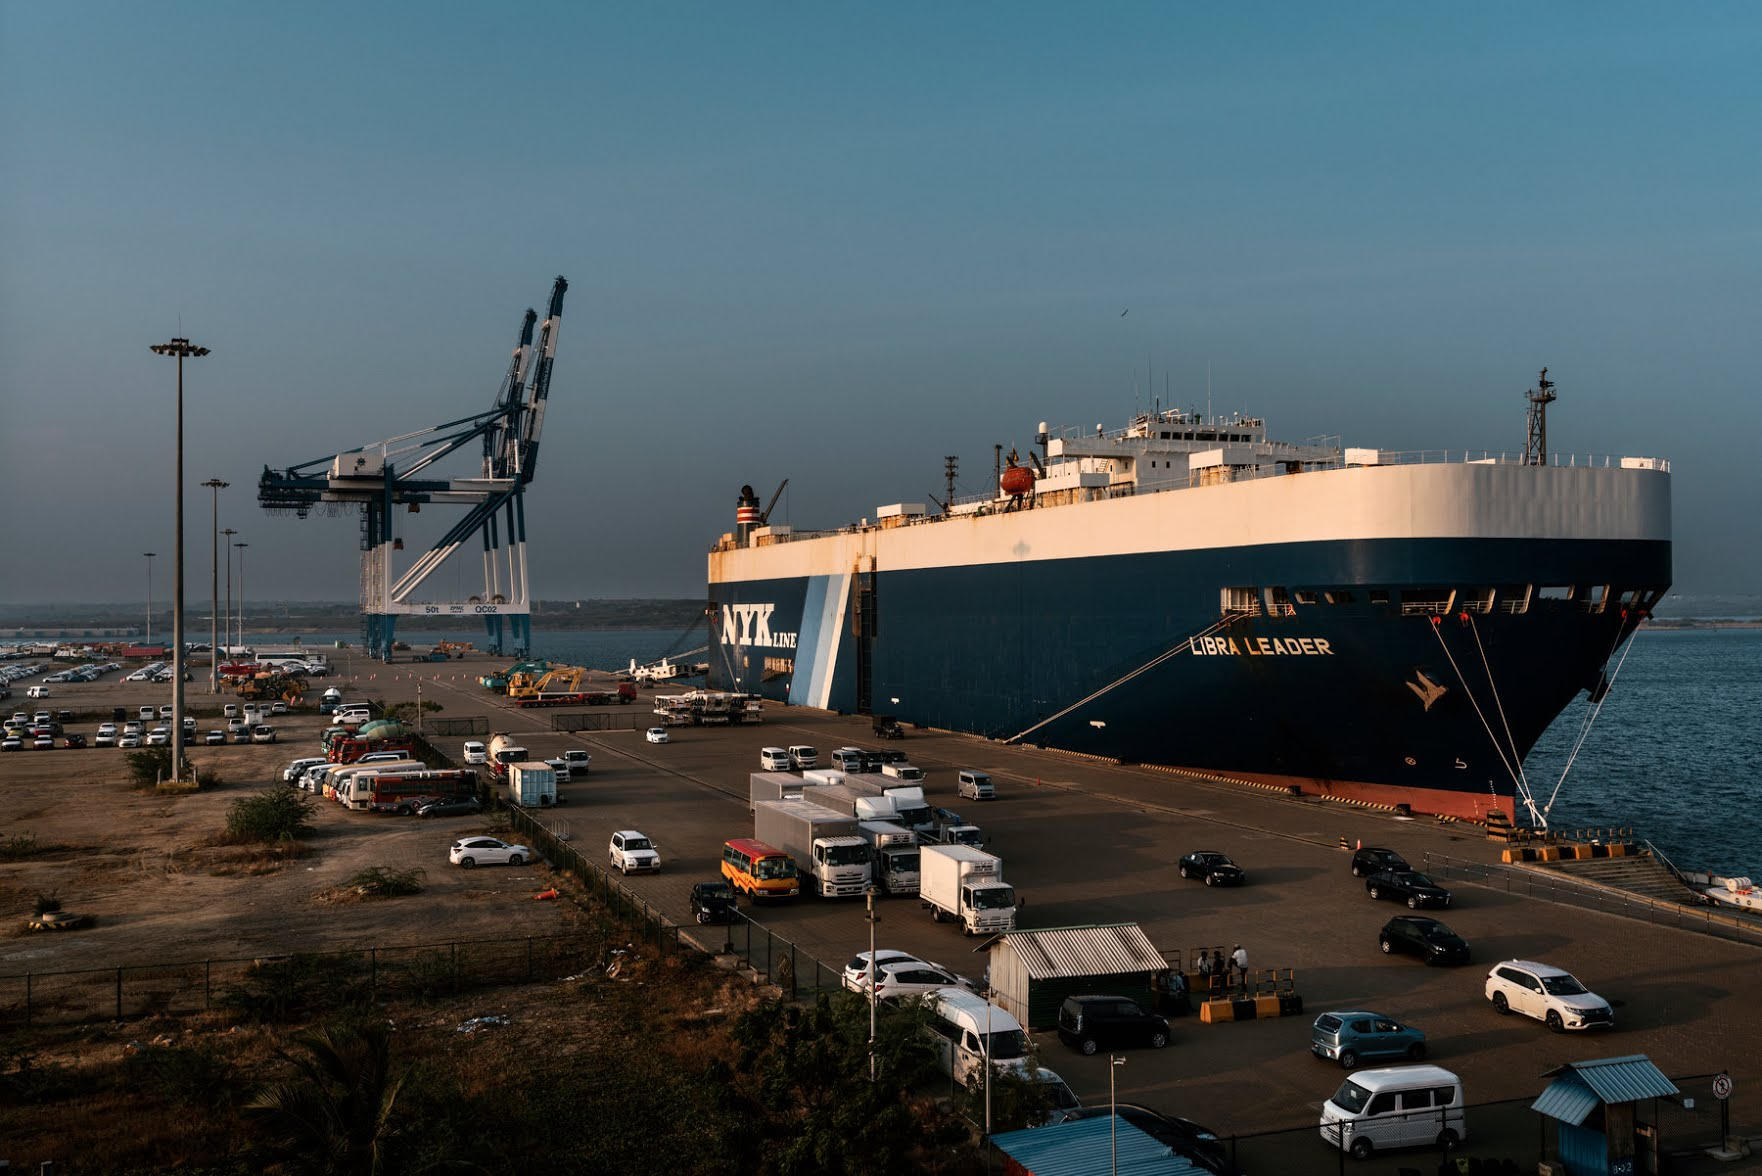 China lent heavily to Sri Lanka, particularly for the construction of the Hambantota Port, and then took possession of the port when the country ran into trouble repaying the loans.